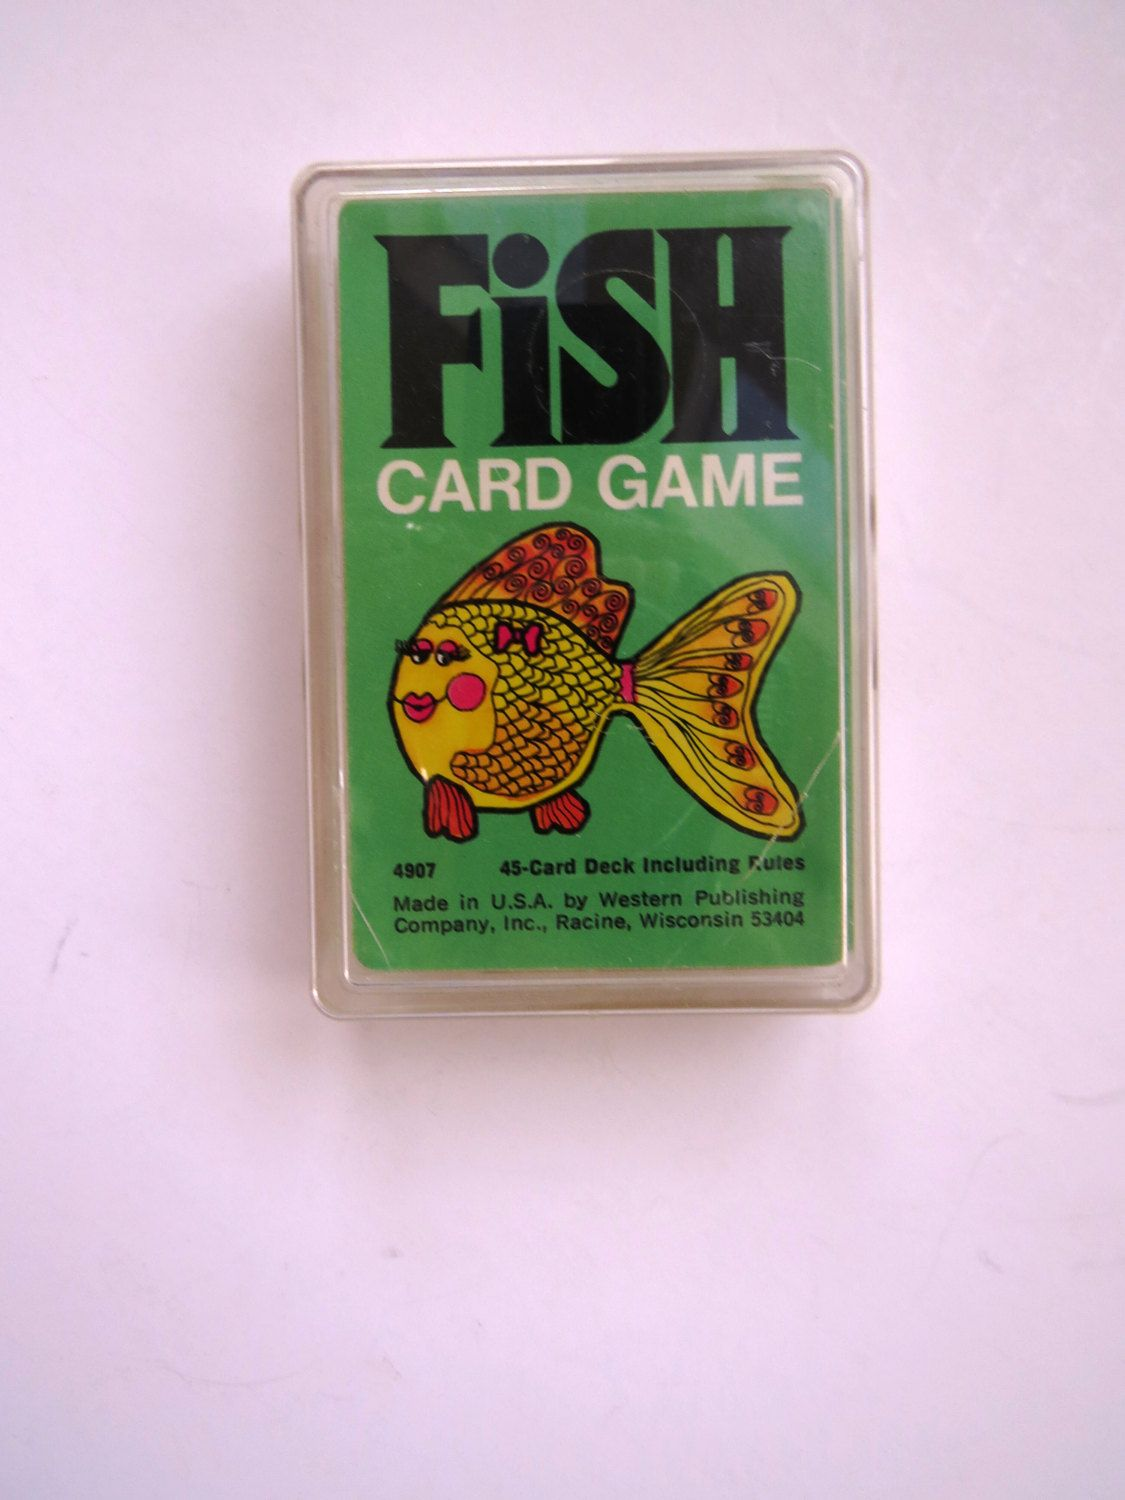 Go Fish Card Game Playing Cards by Western Publishing